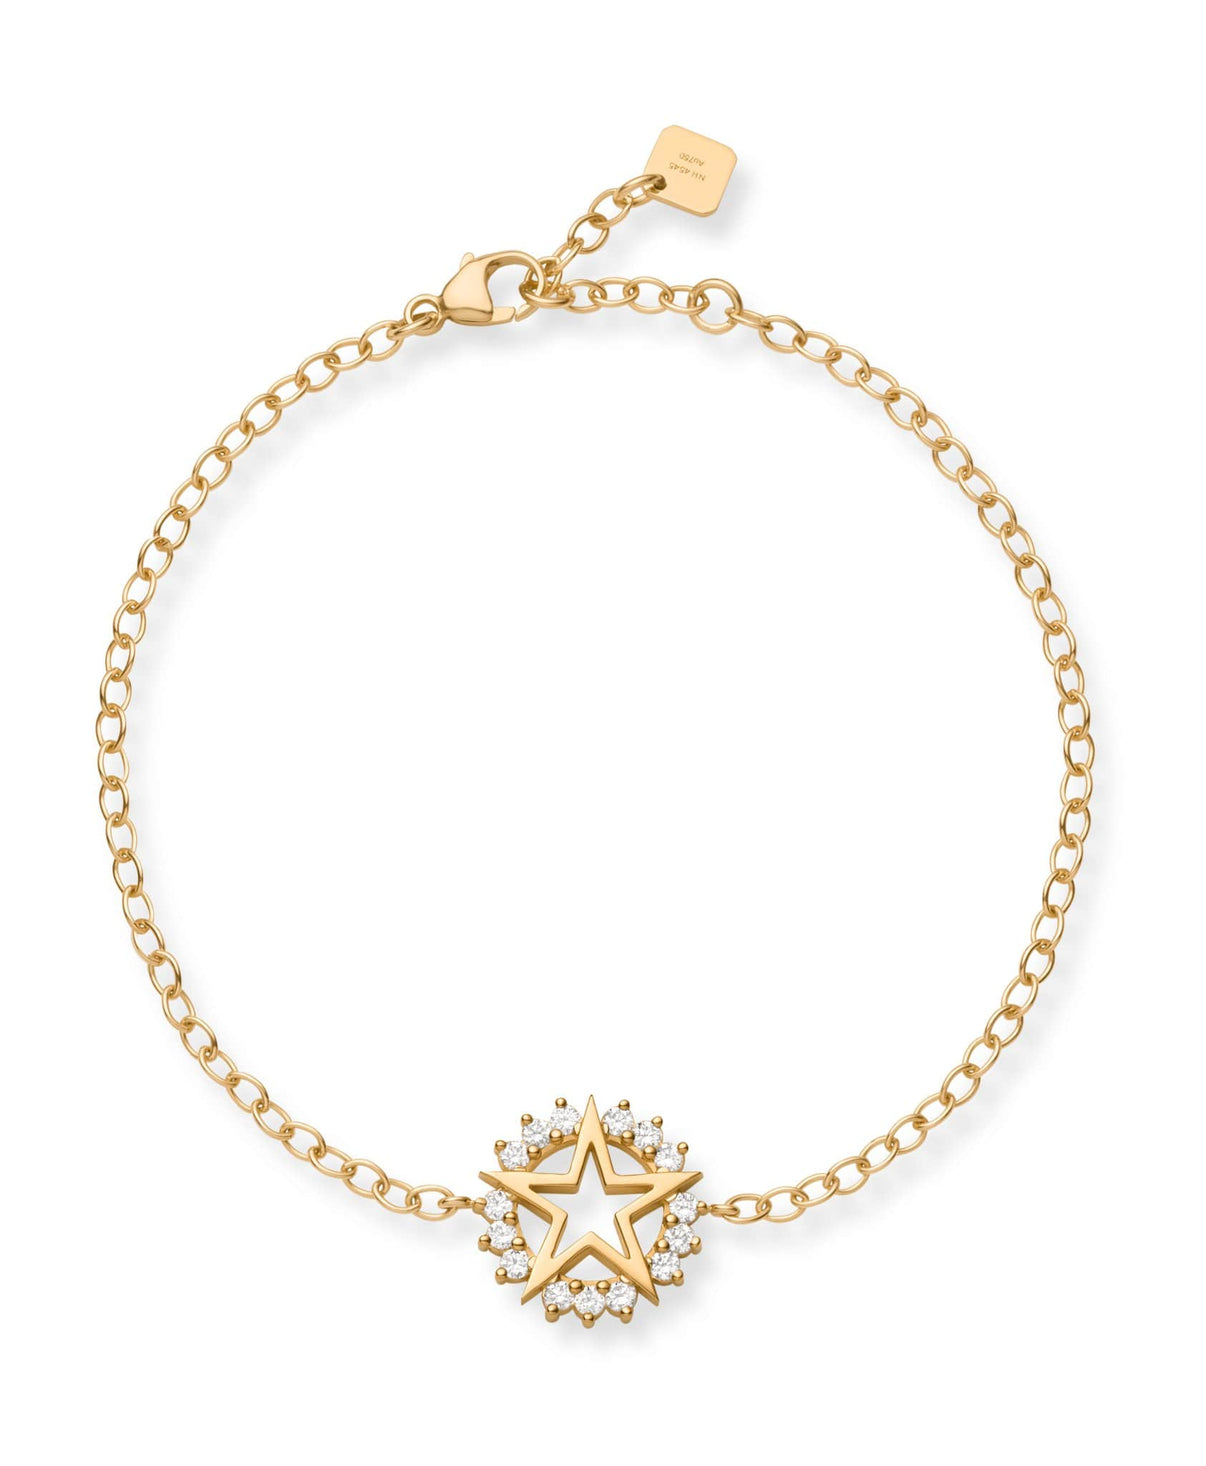 Medium Star Bracelet: Discover Luxury Fine Jewelry | Nouvel Heritage || Yellow Gold